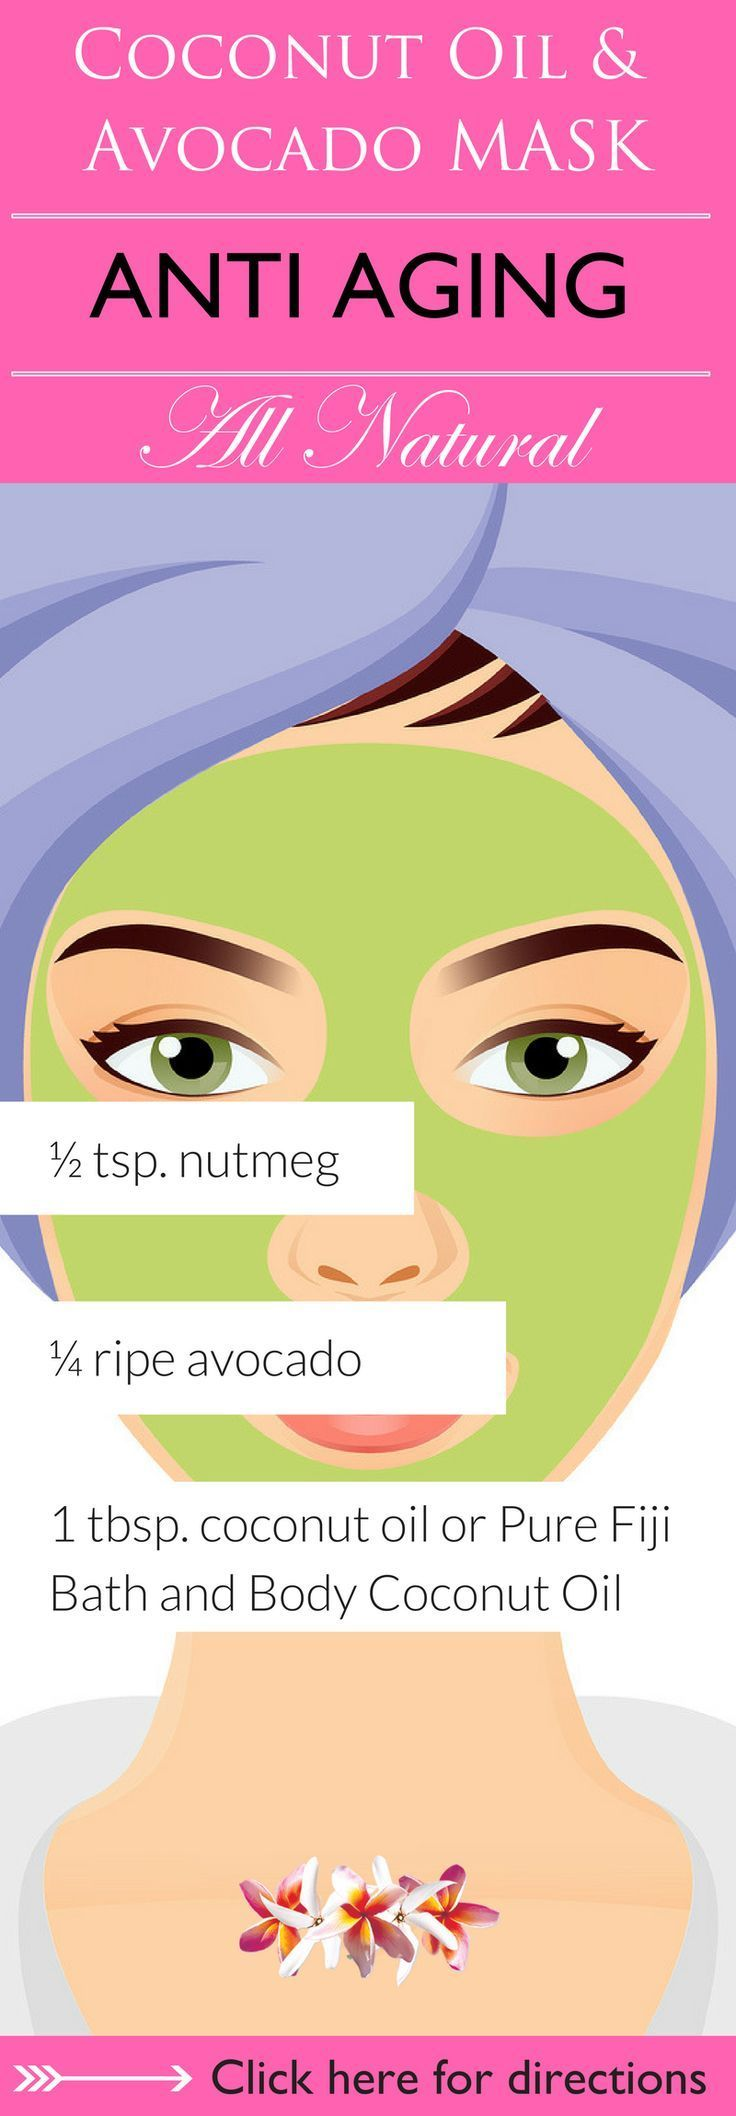 Avocado and coconut oil both work to hydrate and nourish your skin, protecting it from premature aging and leaving you with soft, supple skin. Avocado also protects against free radicals, slowing down the aging process of the skin. Click here to learn 6 DIY coconut oil face mask recipes for you to try that are sure to leave your skin soft, supple and radiant http://www.purefiji.com/blog/coconut-oil-face-masks/ | Natural Beauty Face